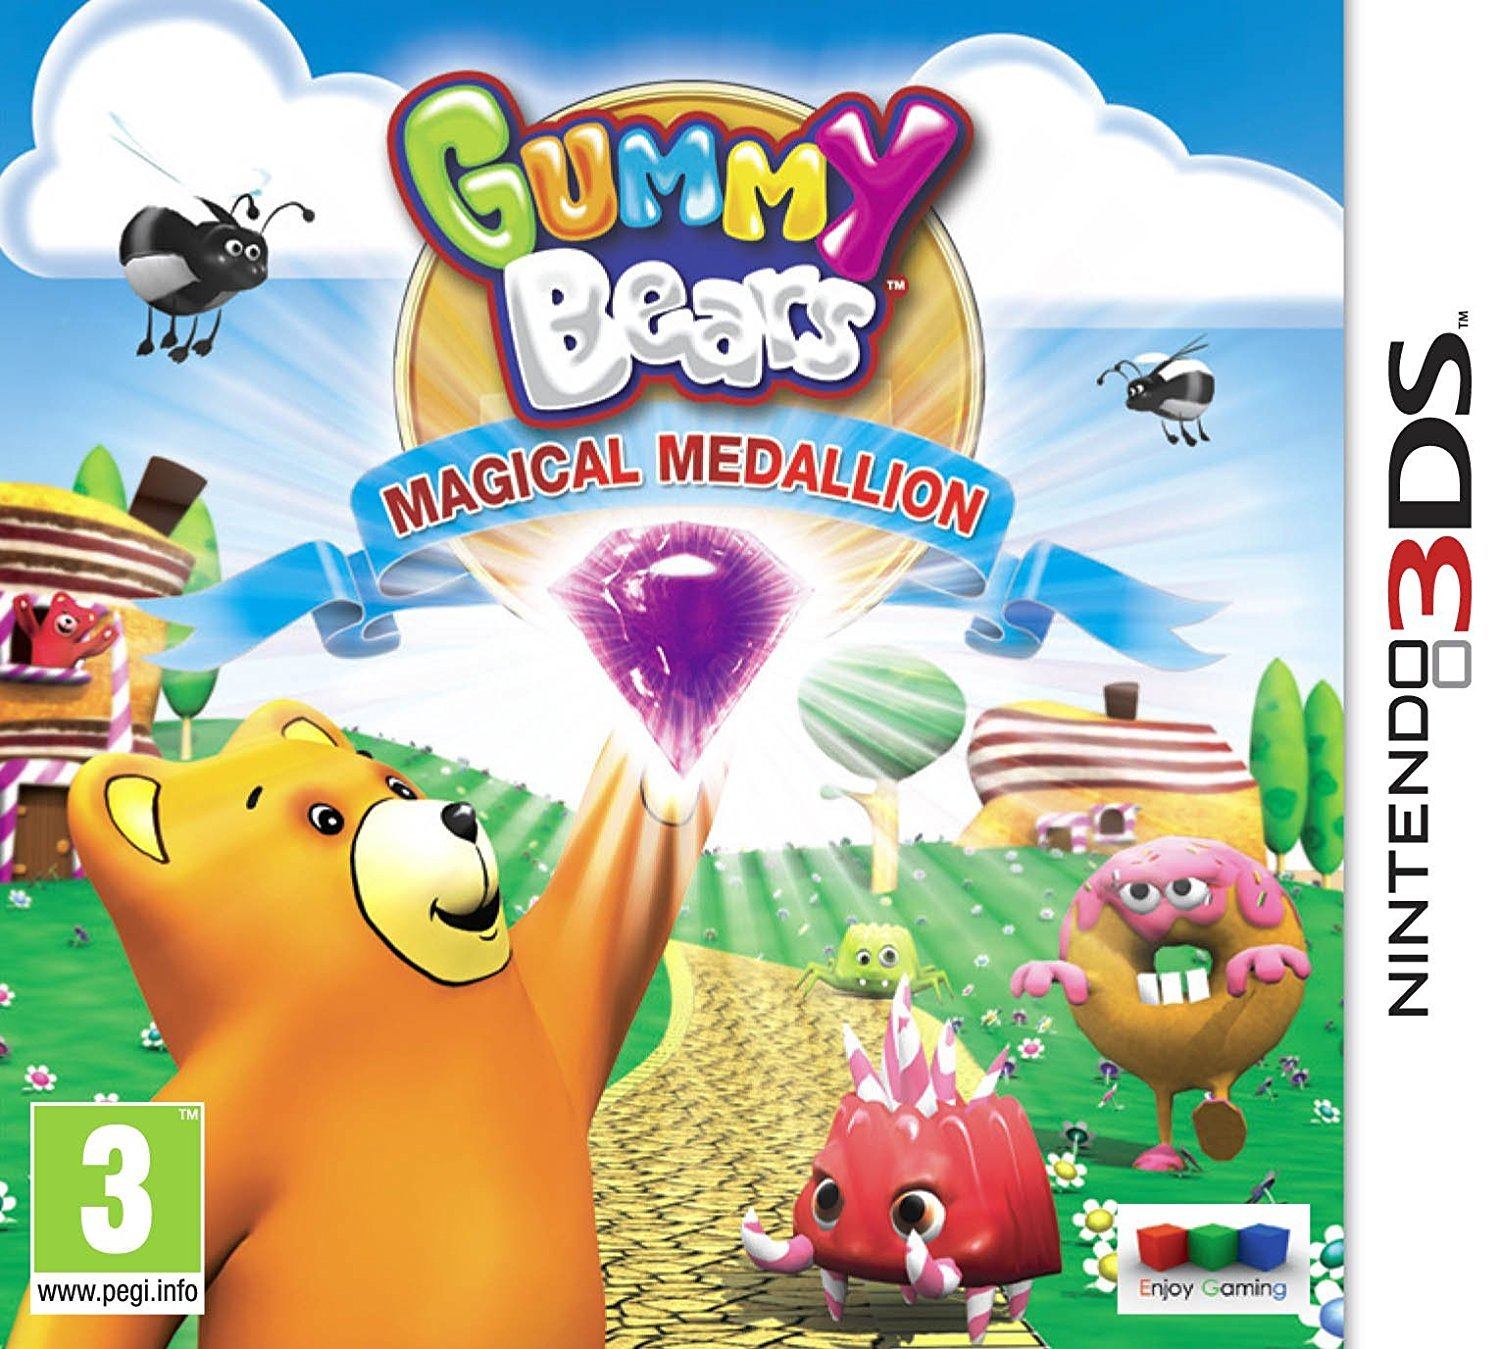 Gummy Bears Magic Medallion for Nintendo 3DS image